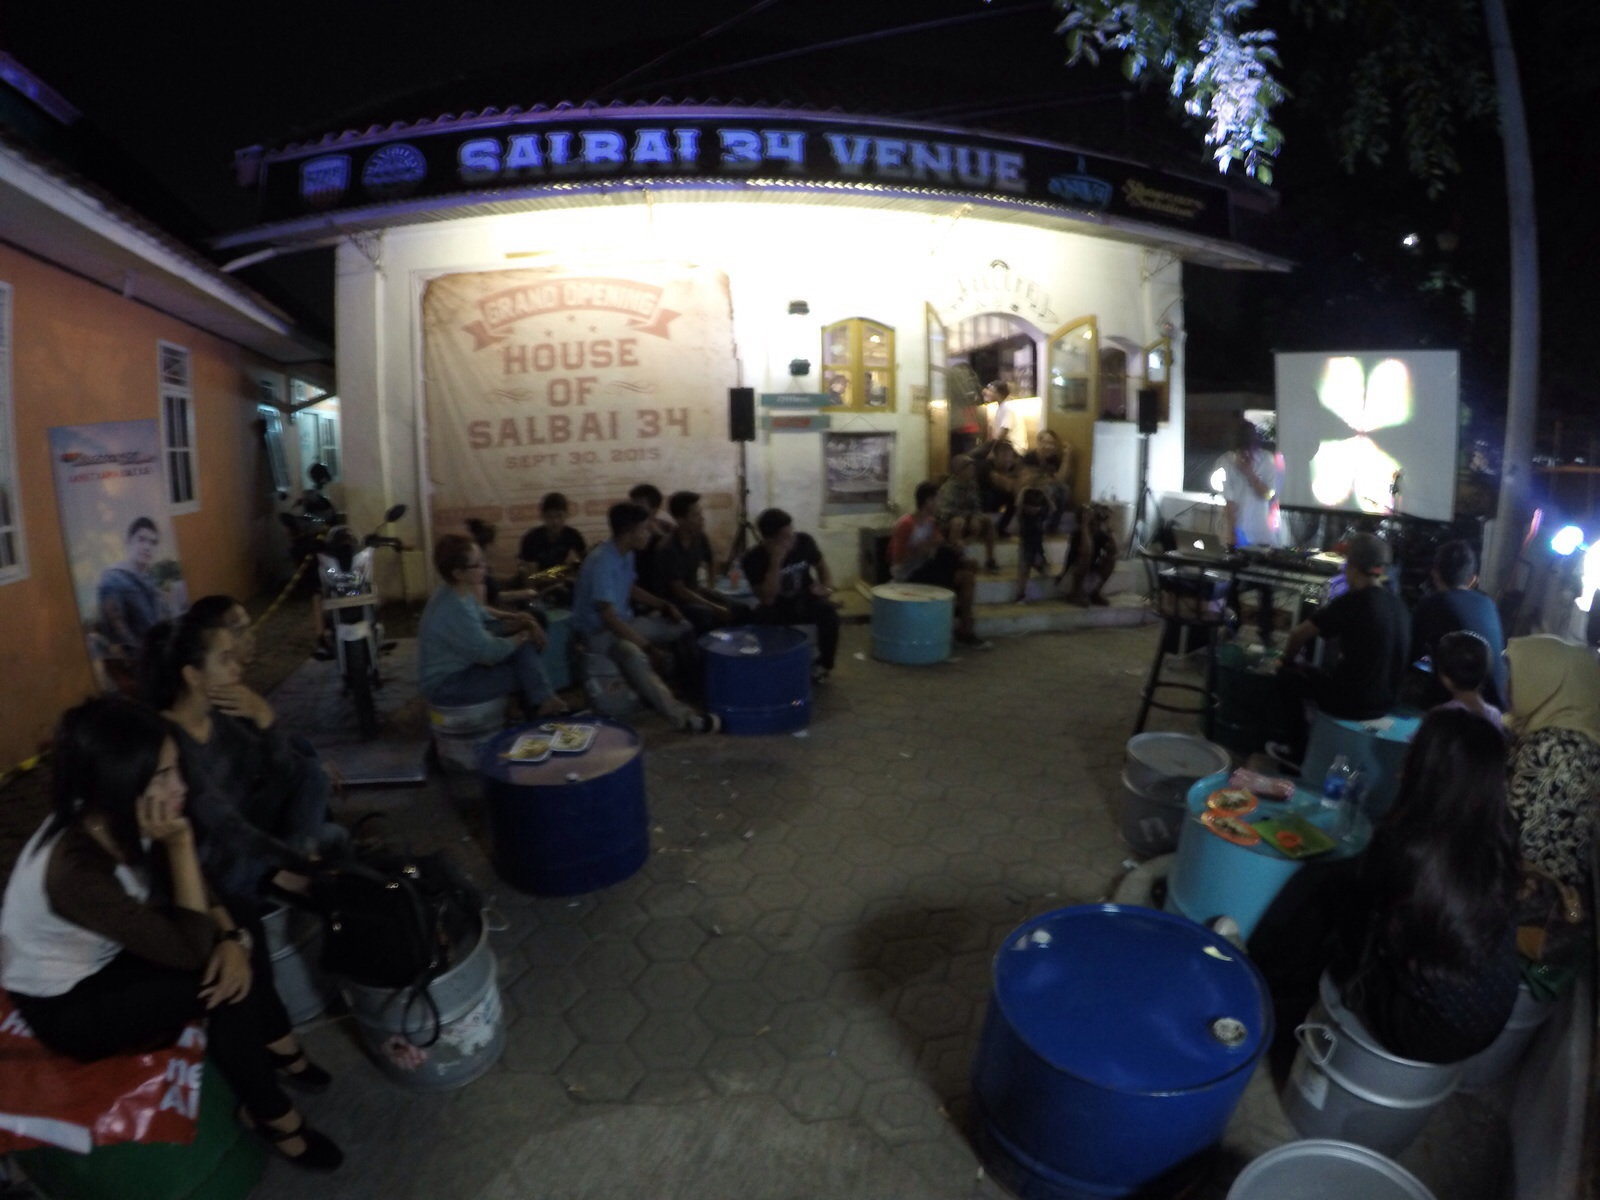 Grand Opening House of Salbai 34